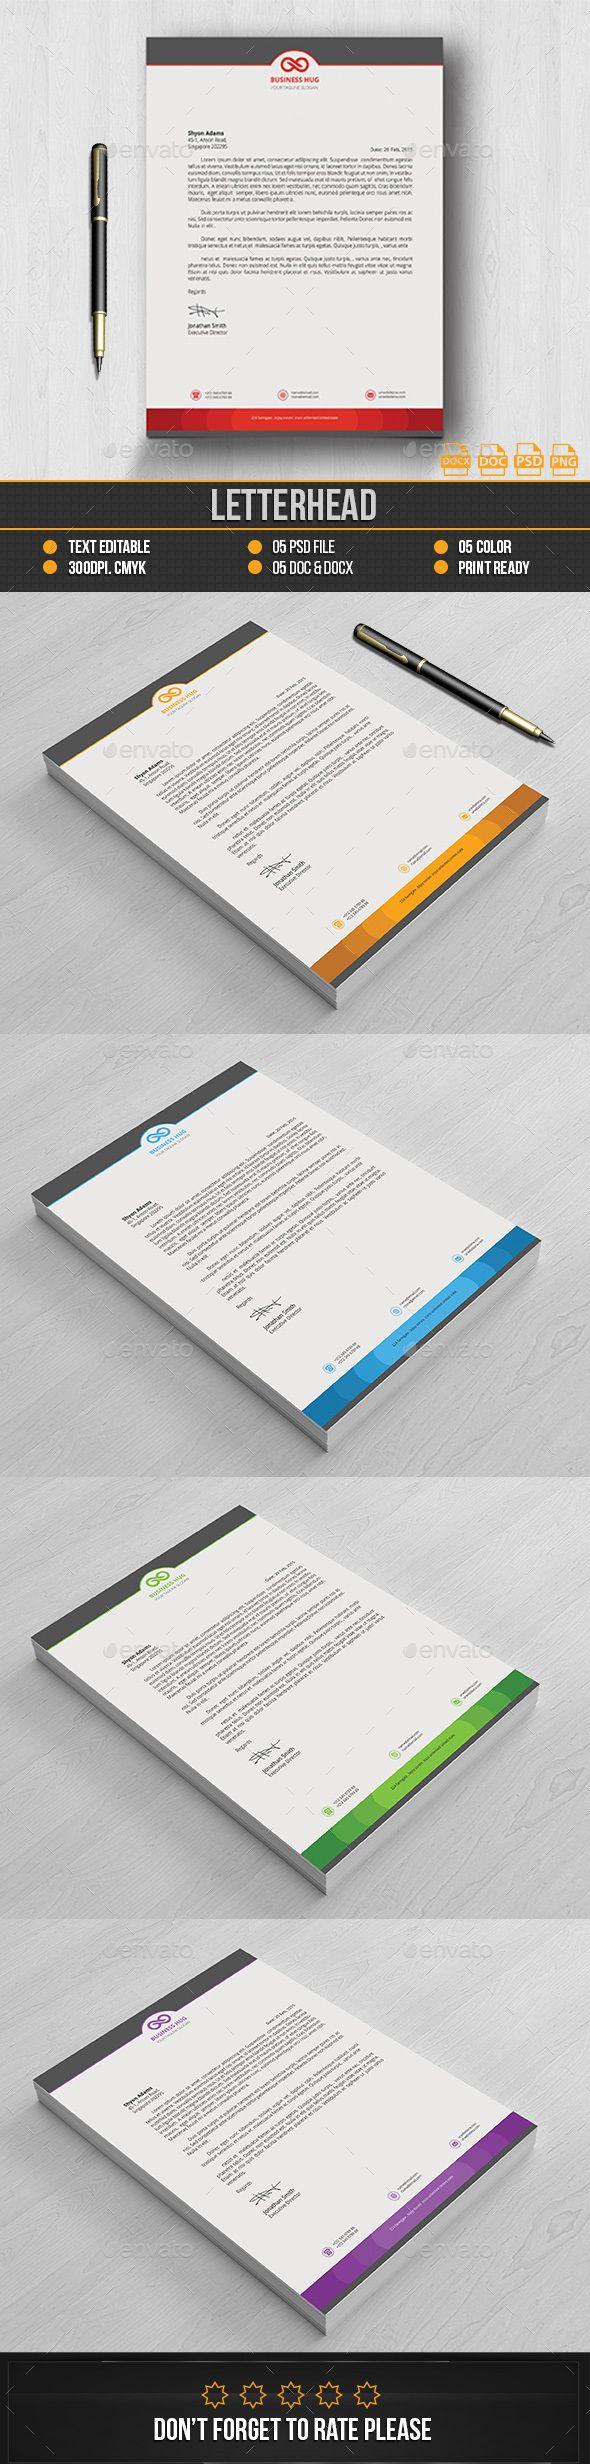 Letterhead Design Template PSD, MS Word